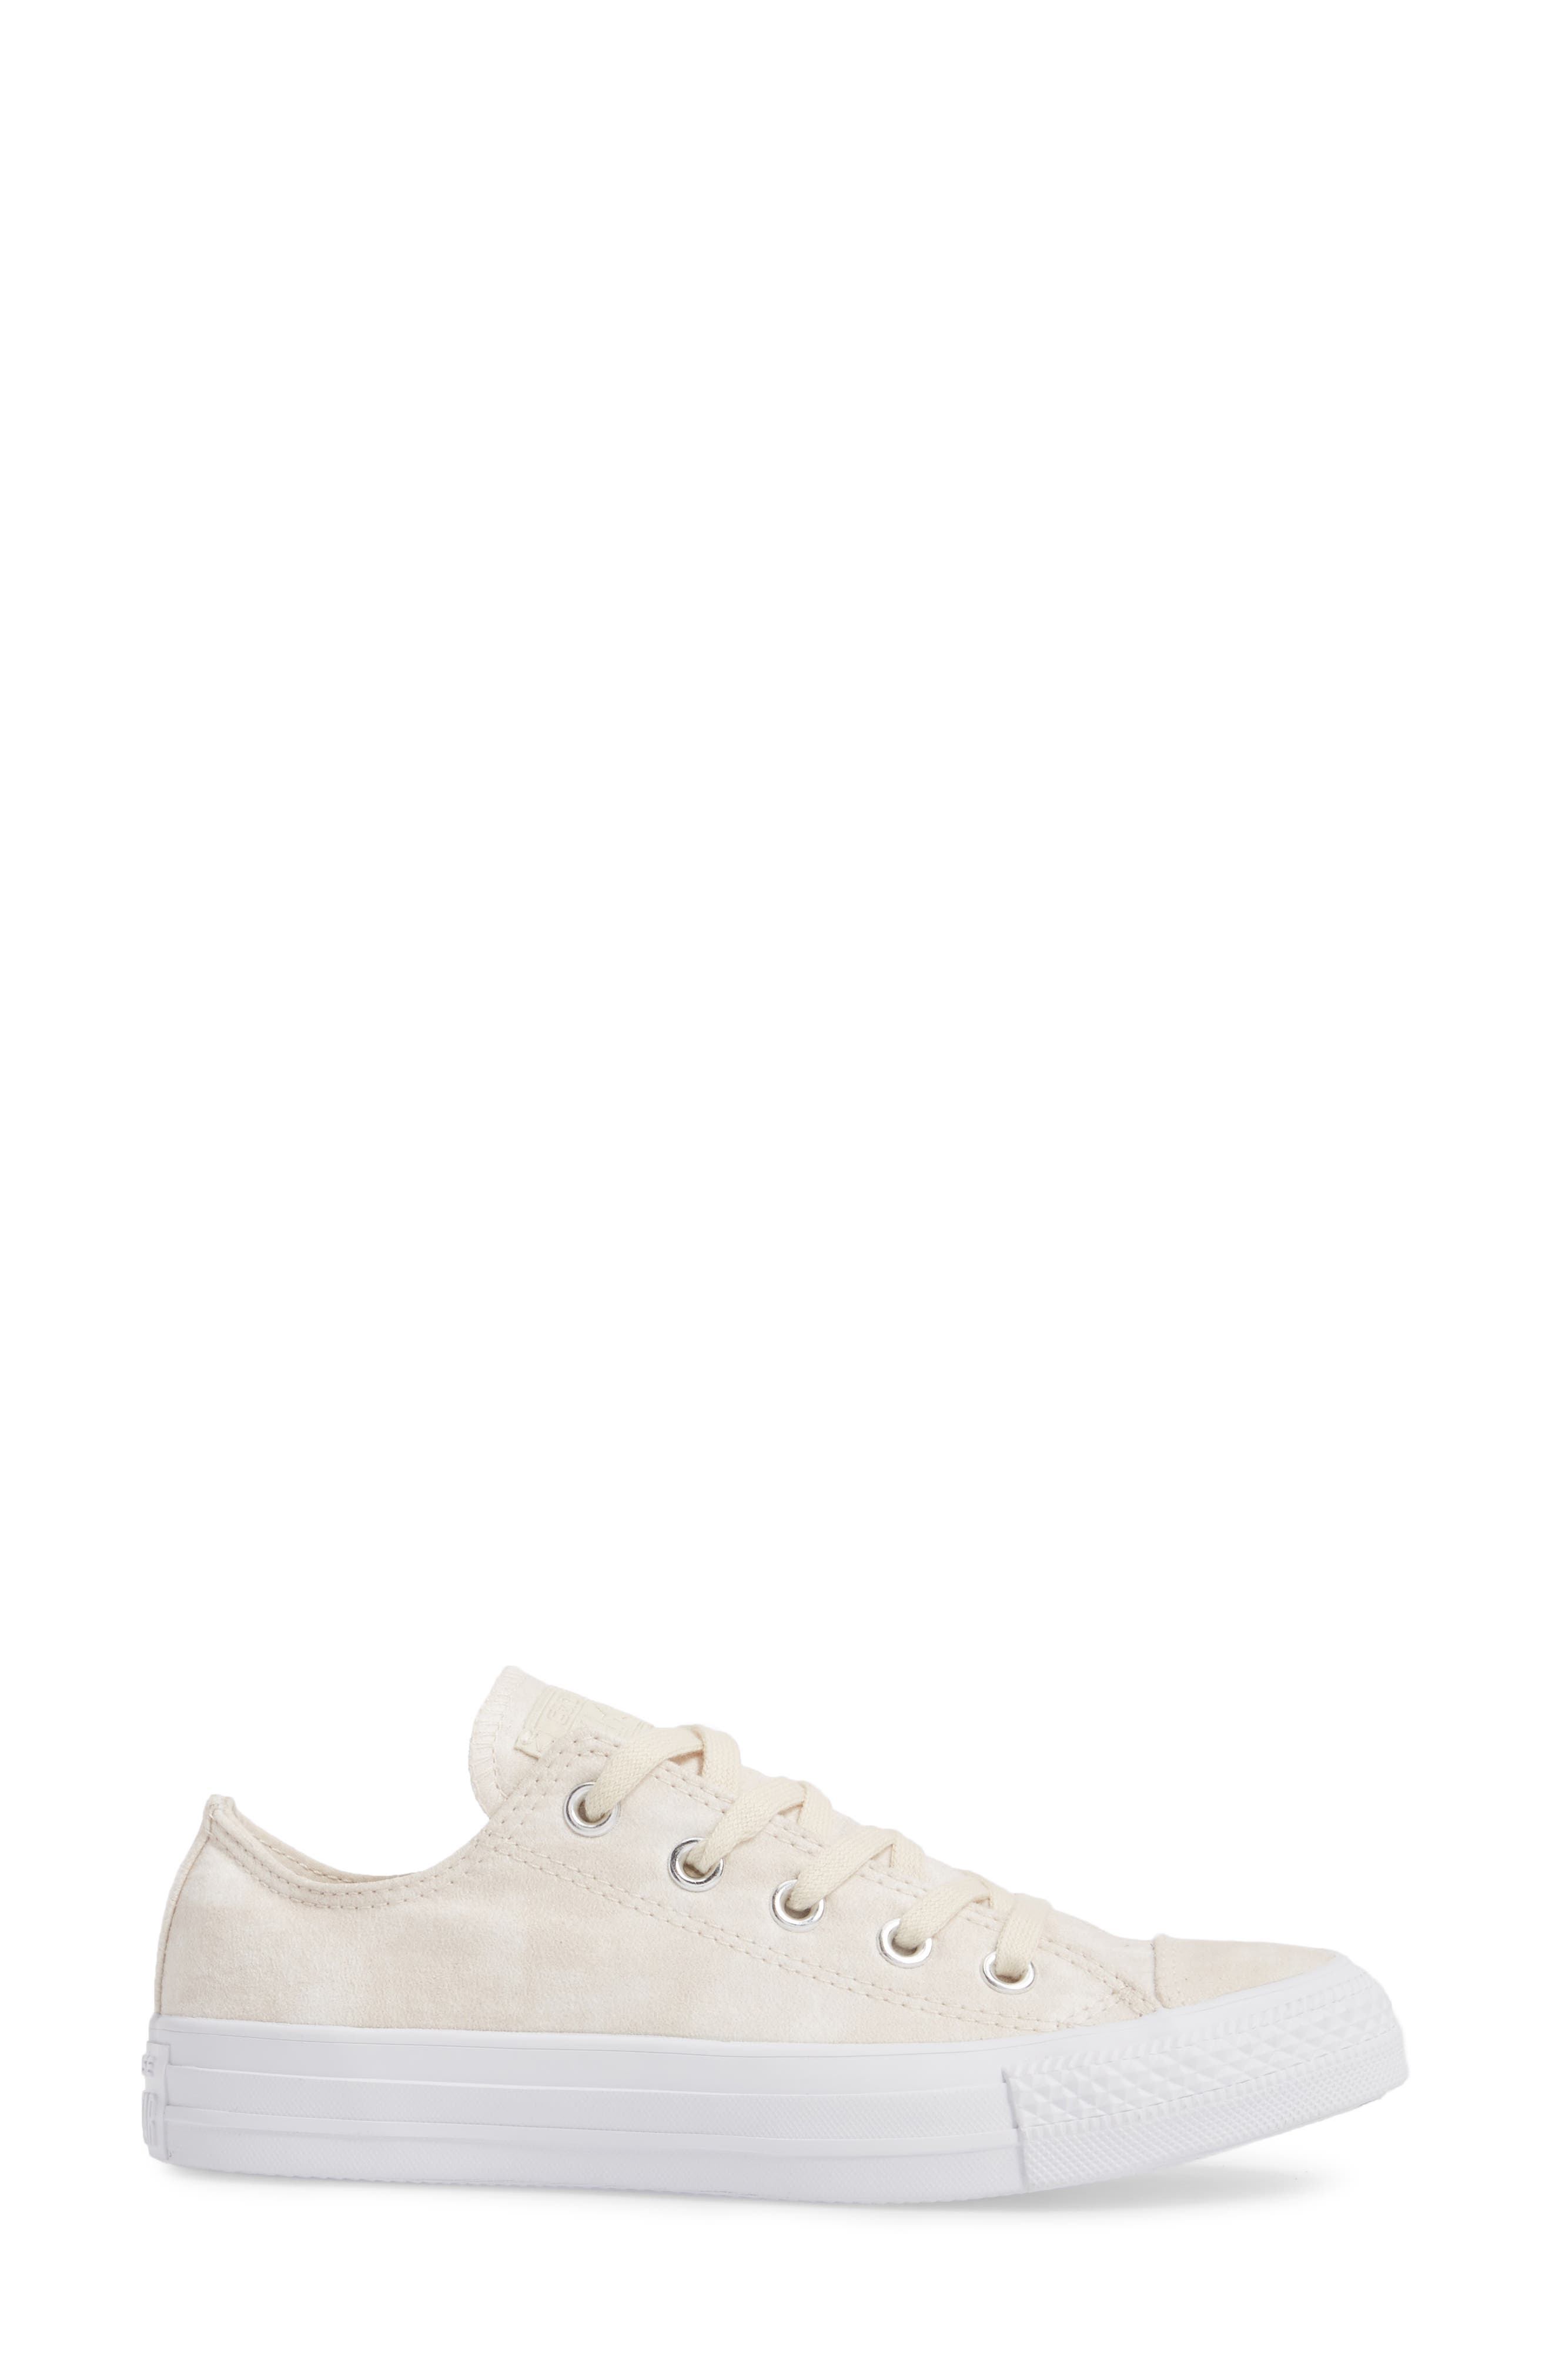 Chuck Taylor<sup>®</sup> All Star<sup>®</sup> Peached Low Top Sneaker,                             Alternate thumbnail 3, color,                             Driftwood